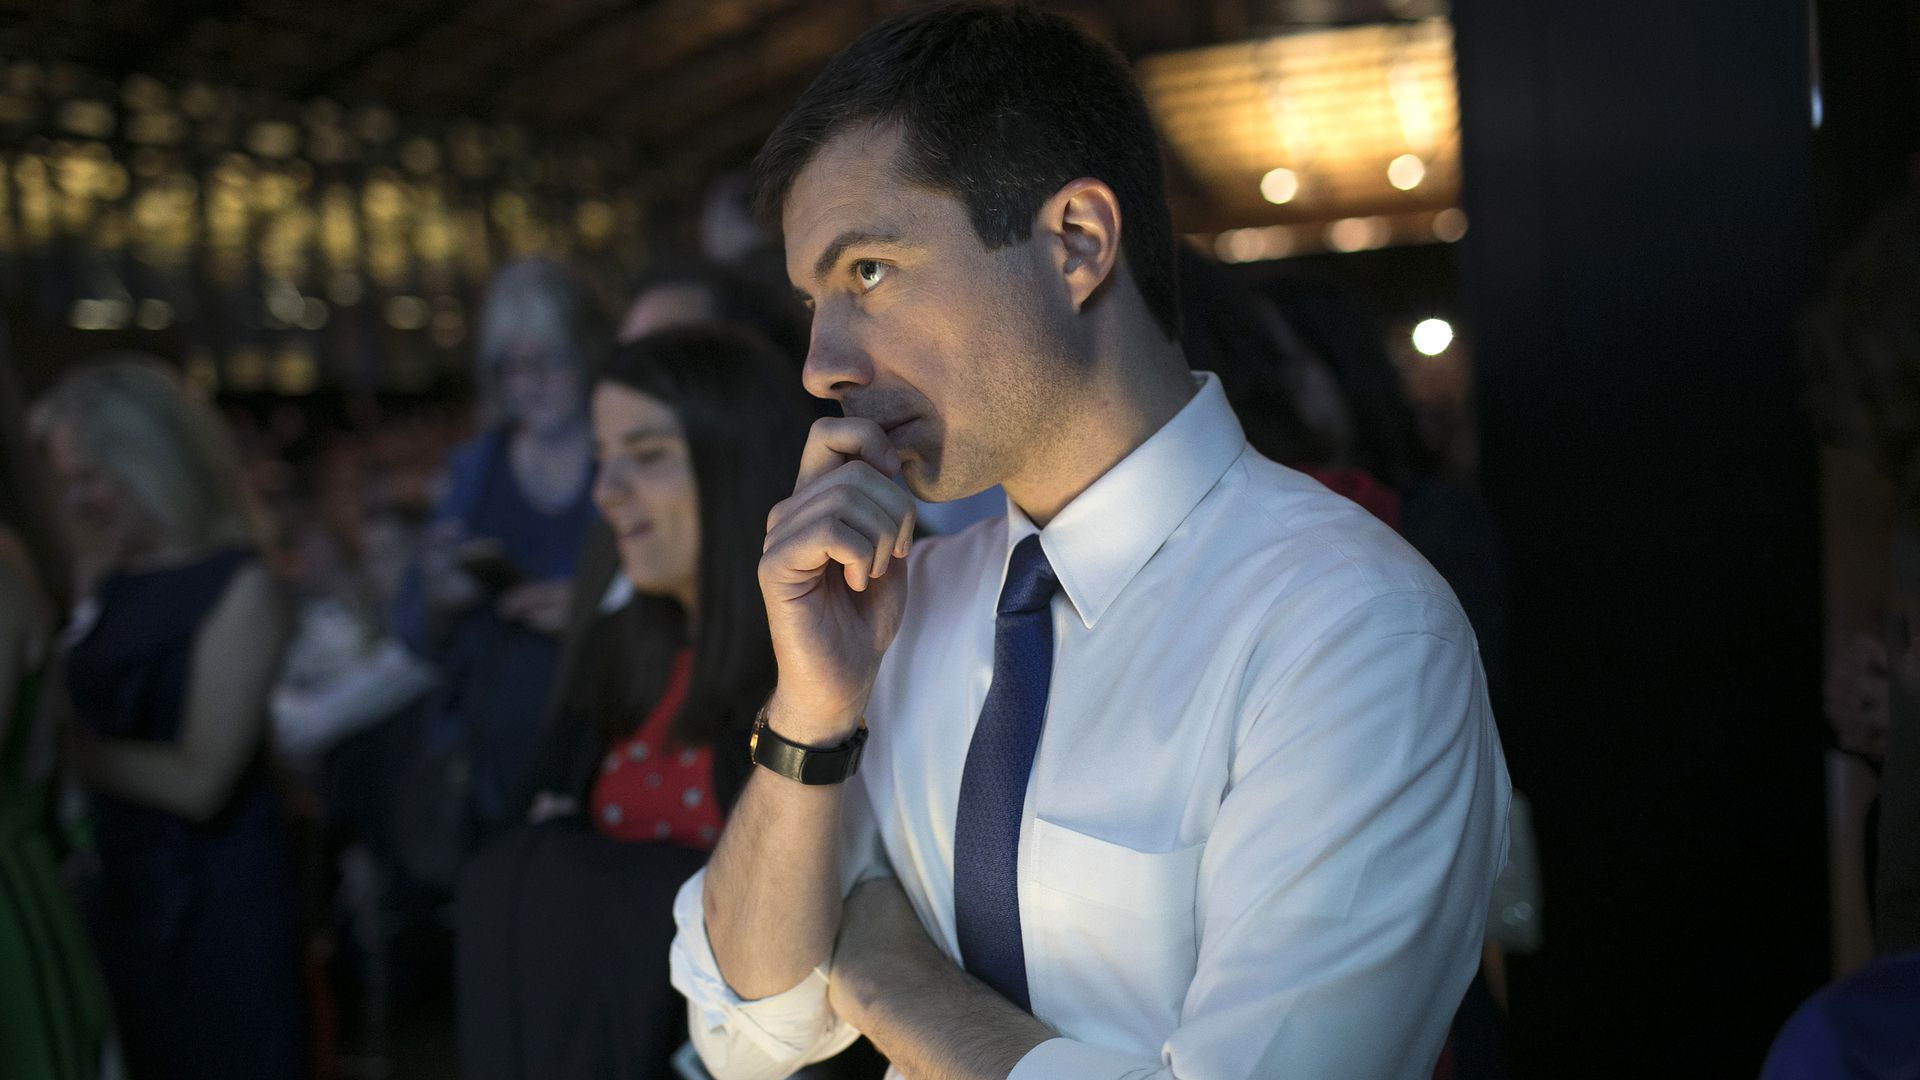 Pete Buttigieg standing with his hand over his mouth.